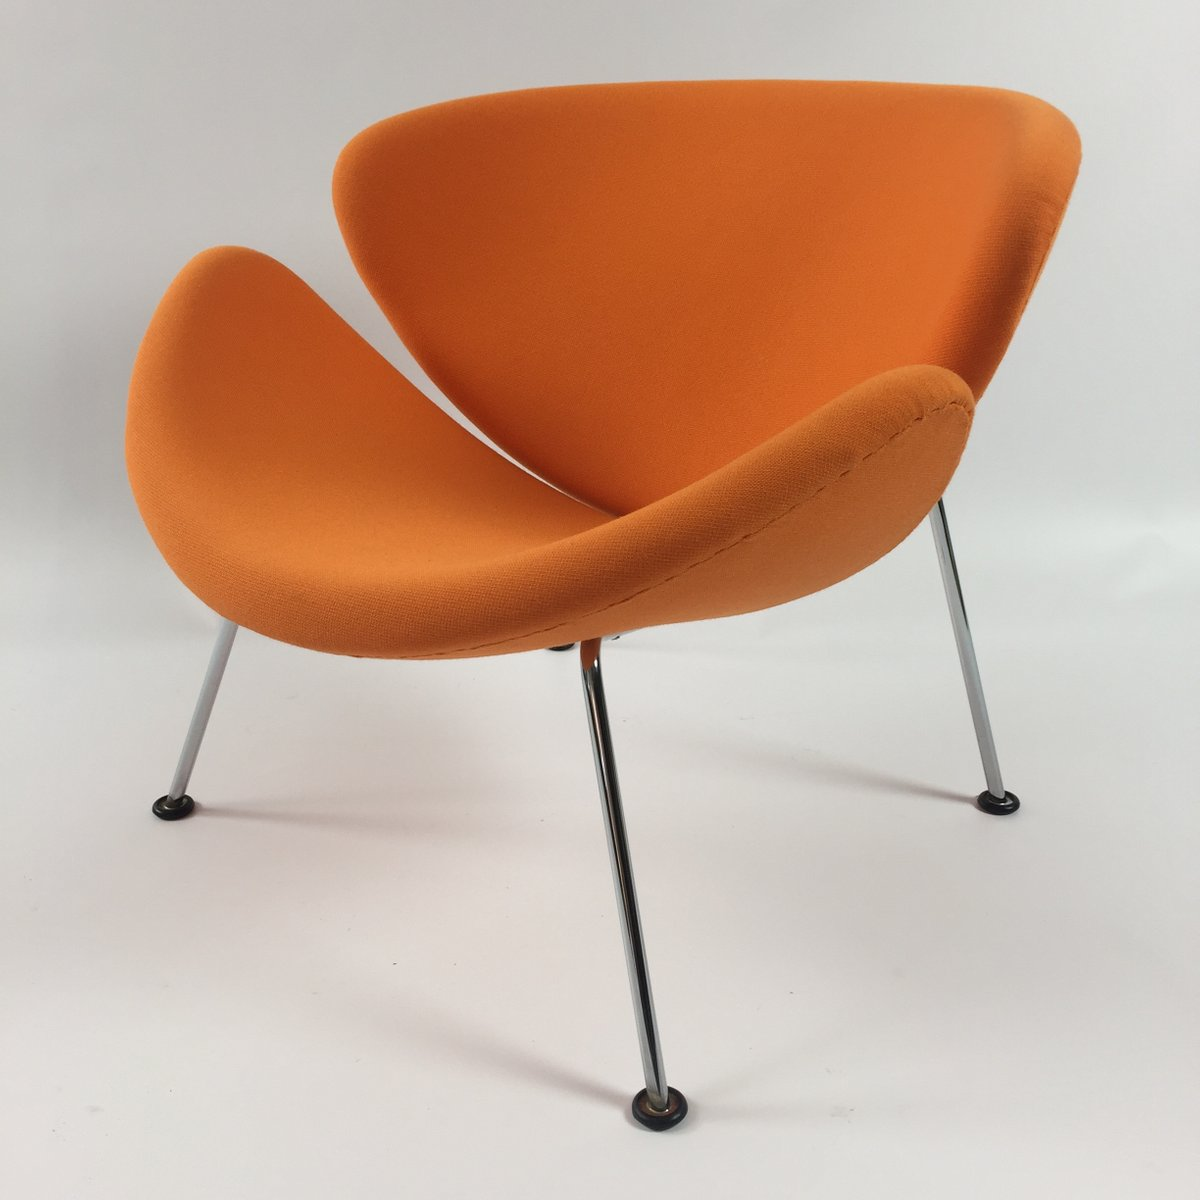 Exceptional Vintage Orange Slice Lounge Chair By Pierre Paulin For Artifort